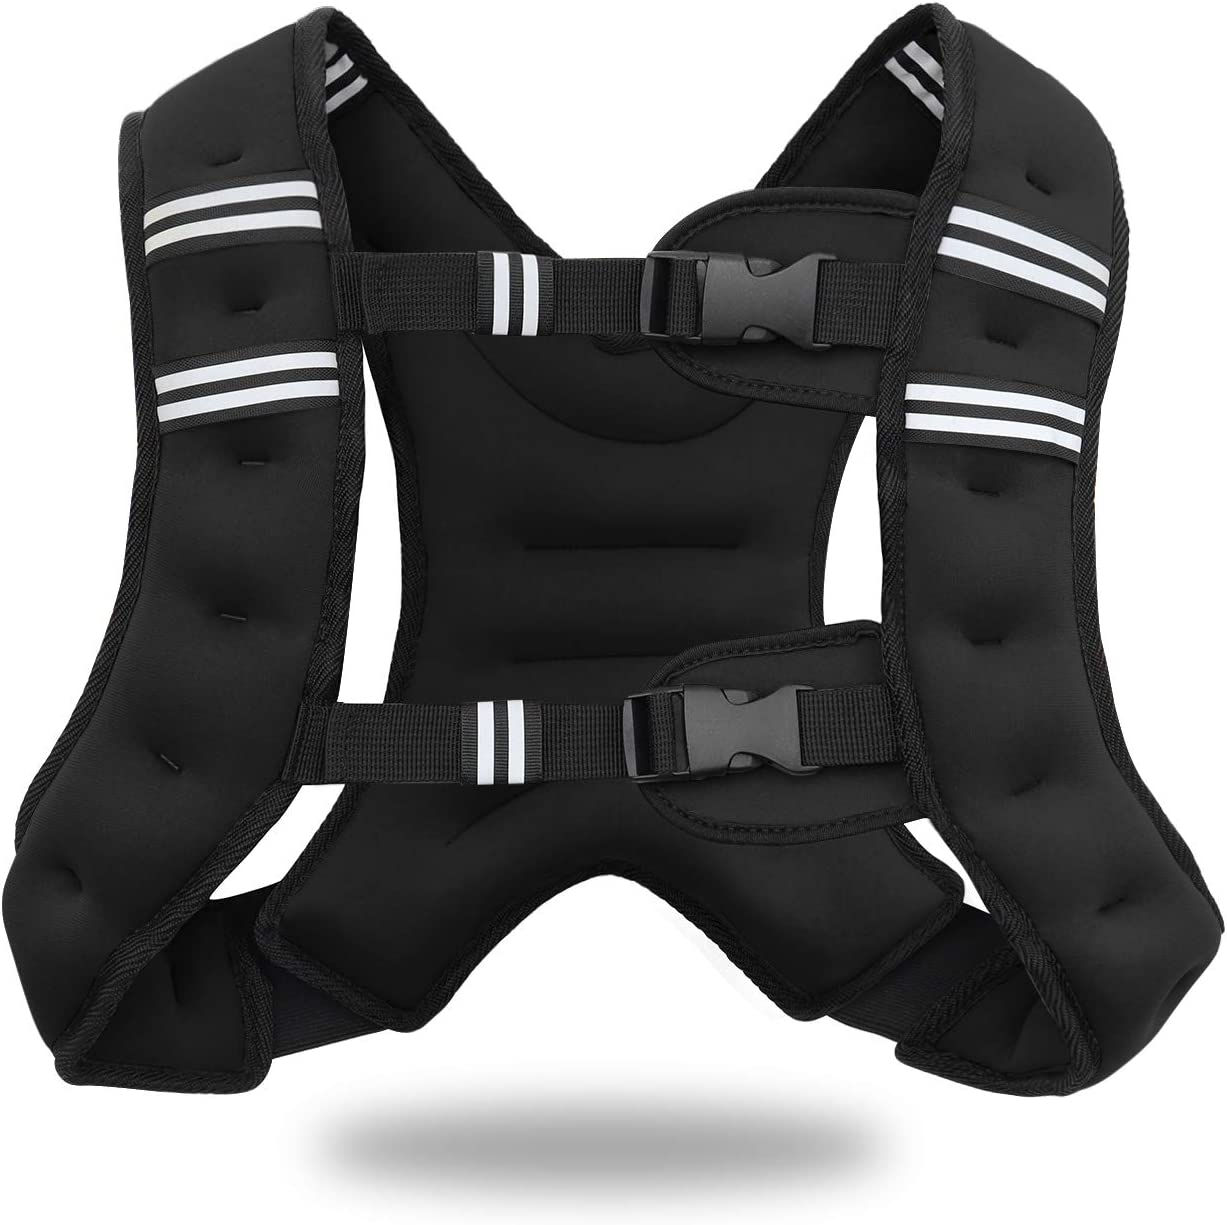 Jolitac Weight Vest for Men Women 5kg 8kg Strength Training Weighted Vests with Reflective Stripe /& Pocket Kids Running Weighted Workout Equipment